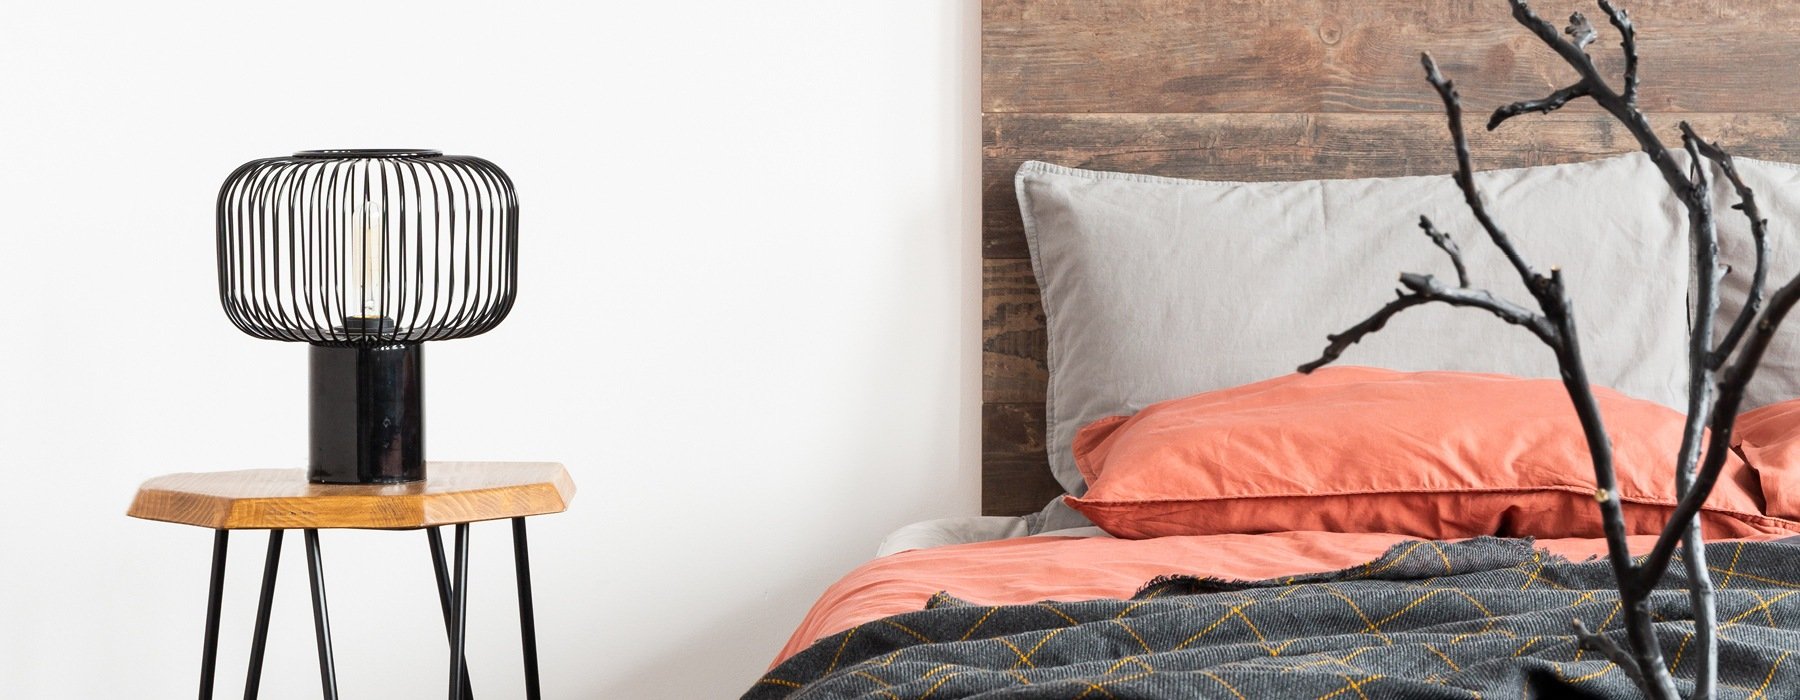 Image of a bed and side table